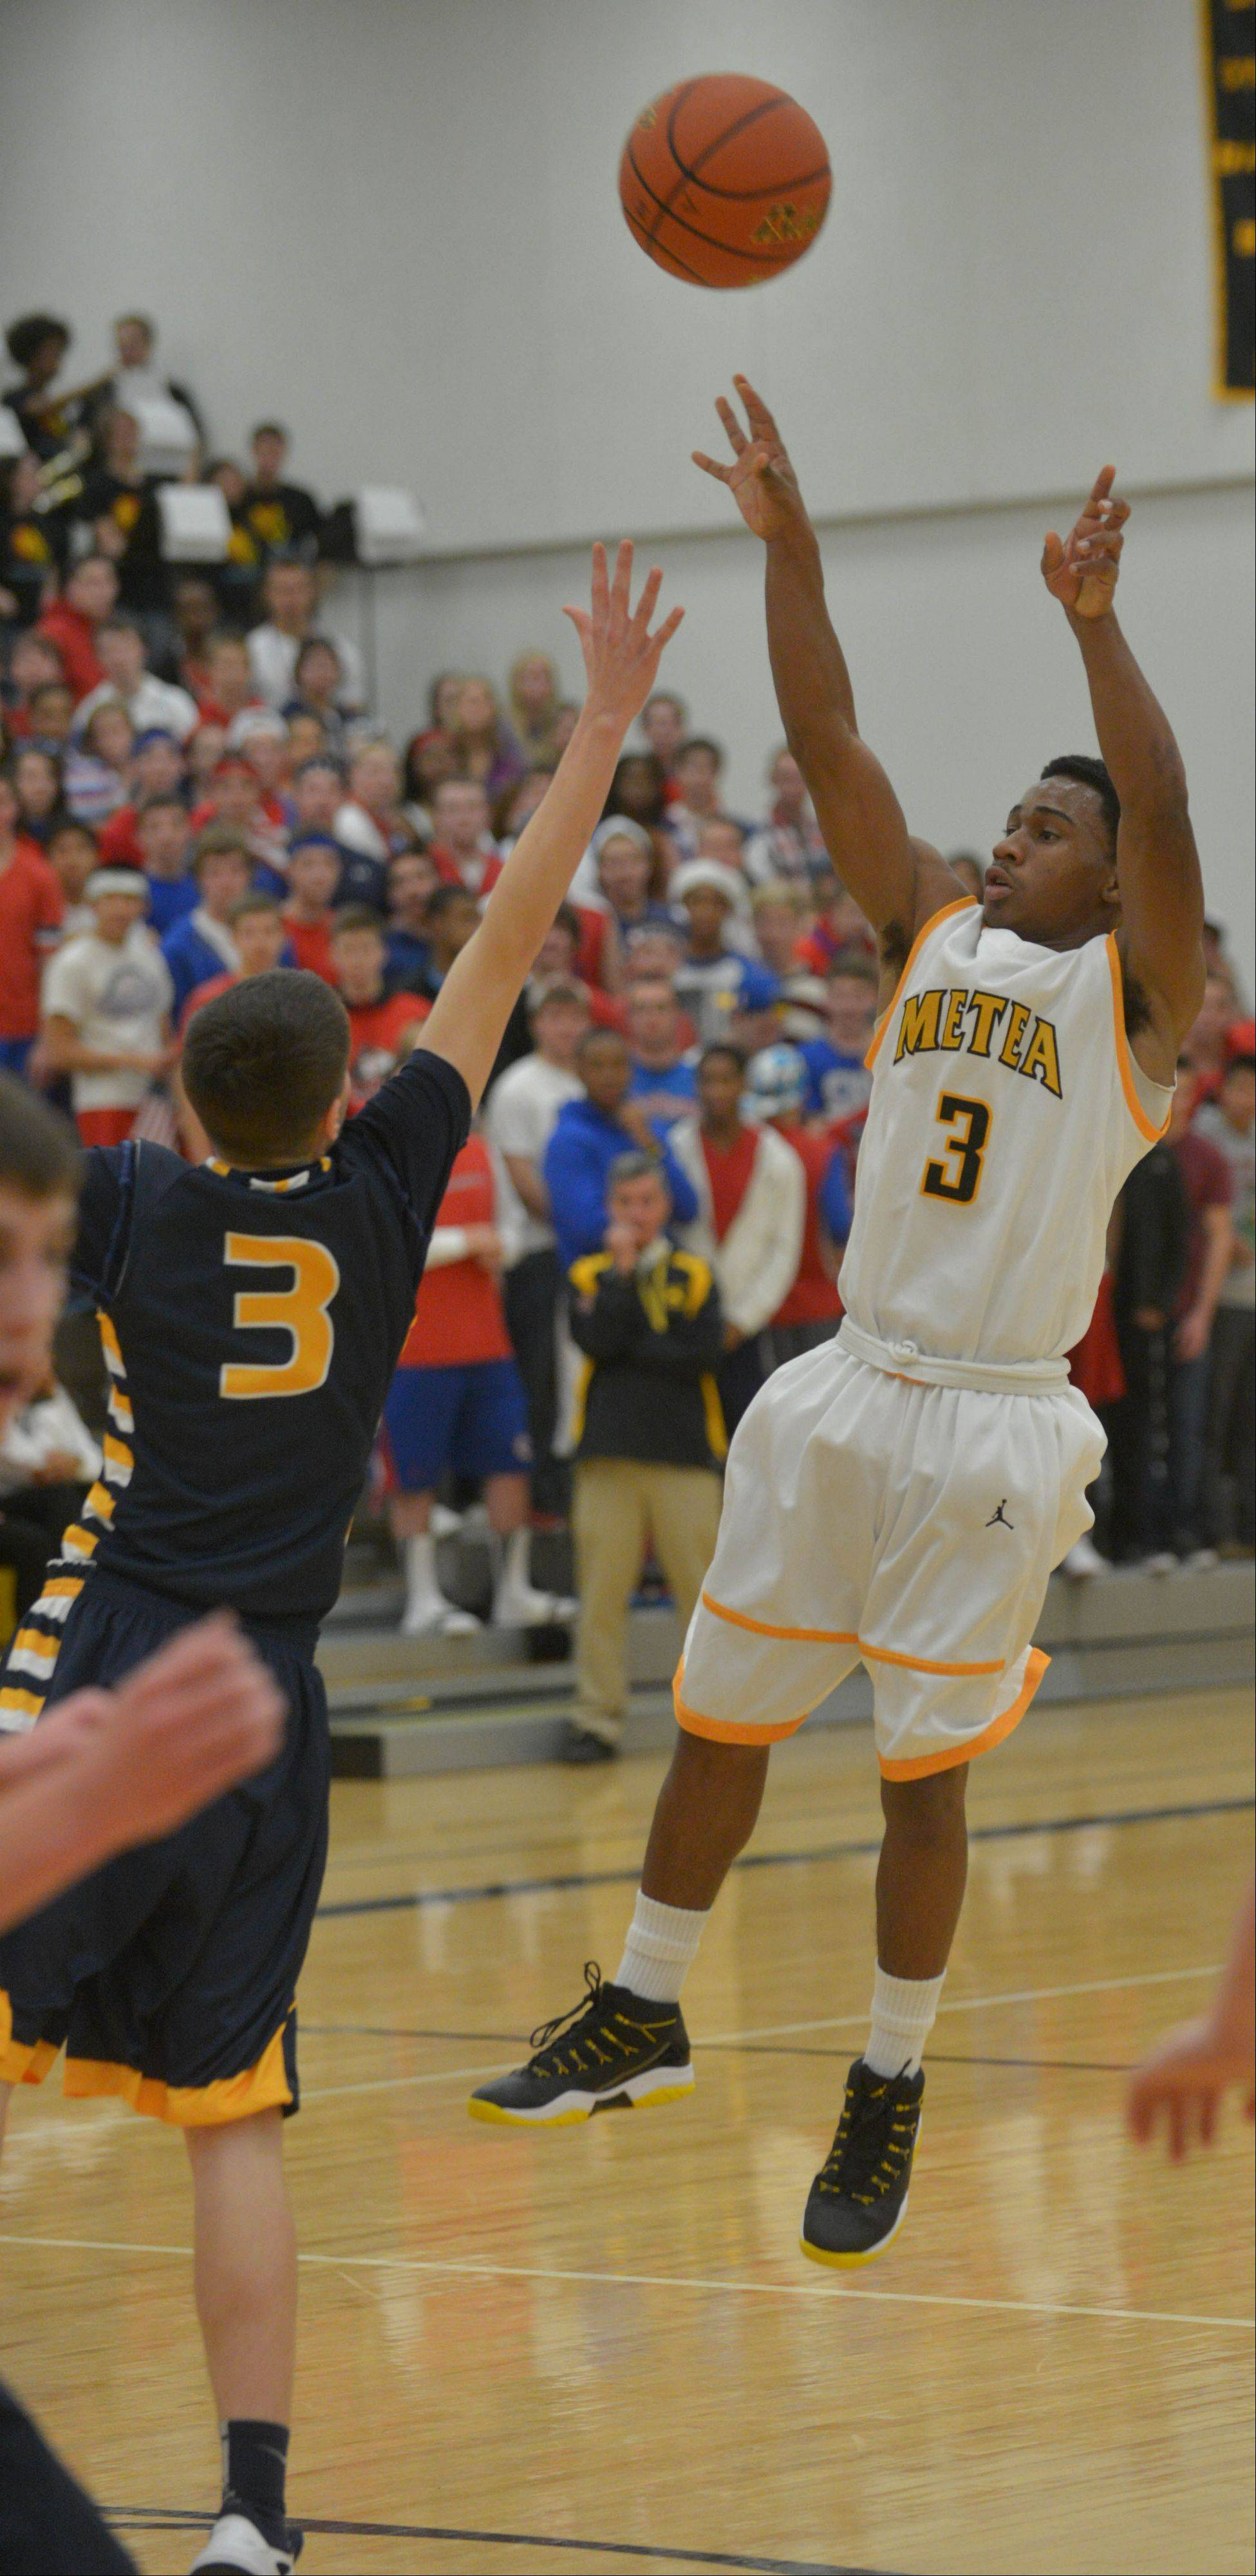 Jordan Kedrowski of Neuqua Valley,left, attempts to block a shot from Bryson Oliver of Metea Valley during the Neuqua Valley at Metea Valley boys basketball game Thursday.